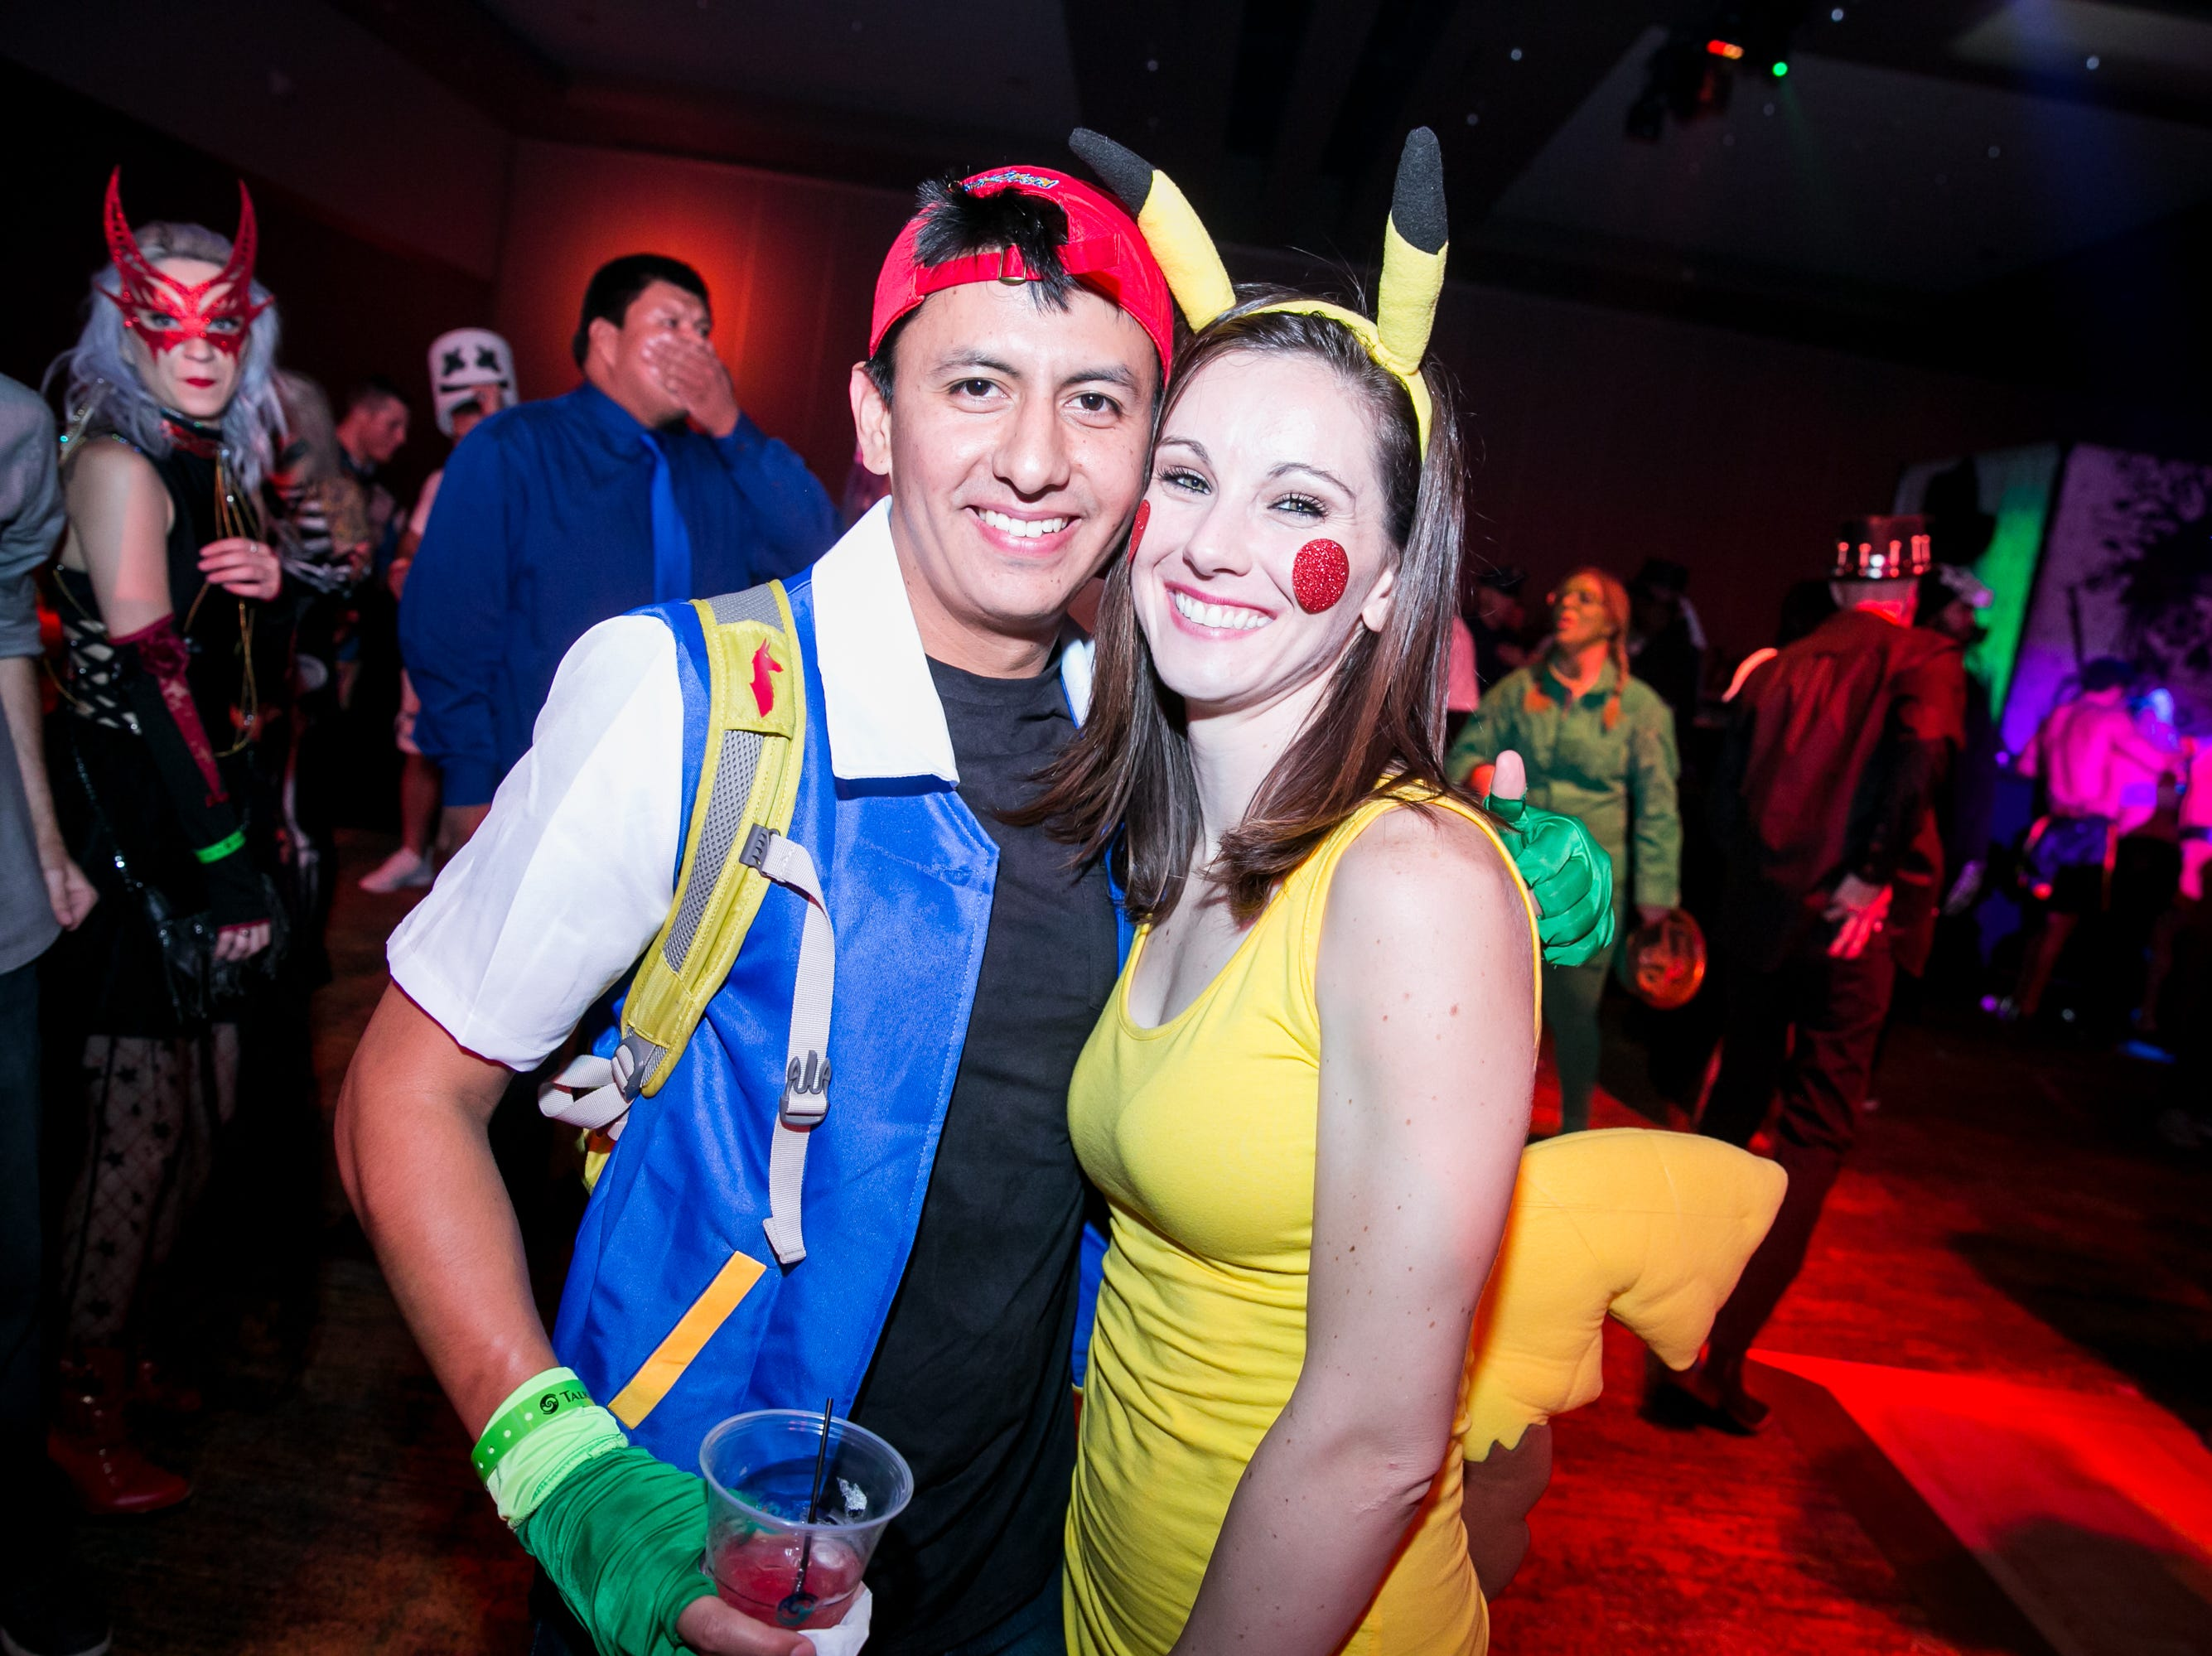 This Pokemon costume was adorable during Wicked Ball at Talking Stick Resort on Saturday, October 27, 2018.